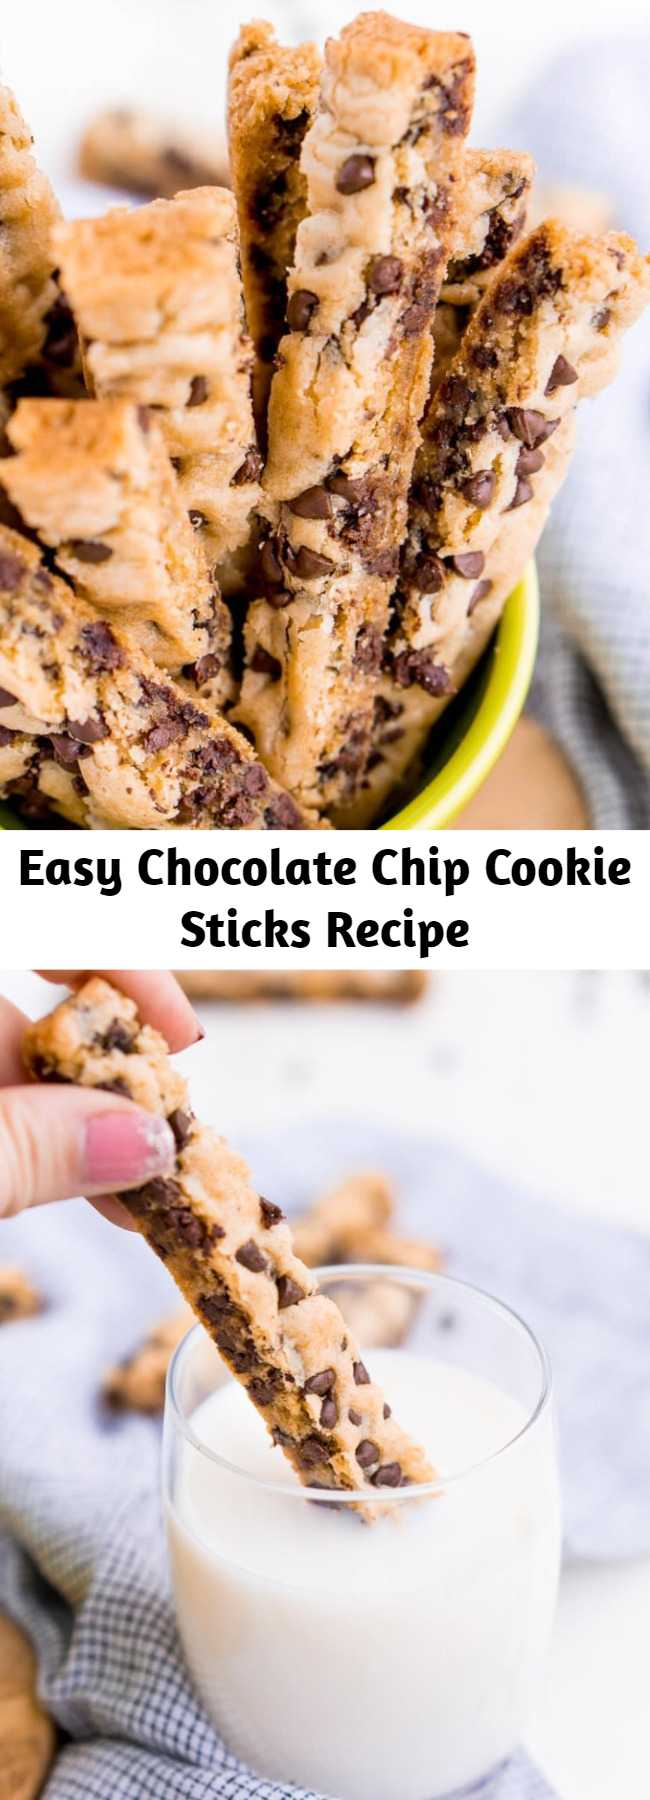 Easy Chocolate Chip Cookie Sticks Recipe - These Chocolate Chip Cookie Sticks are perfect for dunking! A thick, slightly crisp, yet still chewy cookie loaded with mini chocolate chips and made in a 9 x 13-inch pan for easy baking!